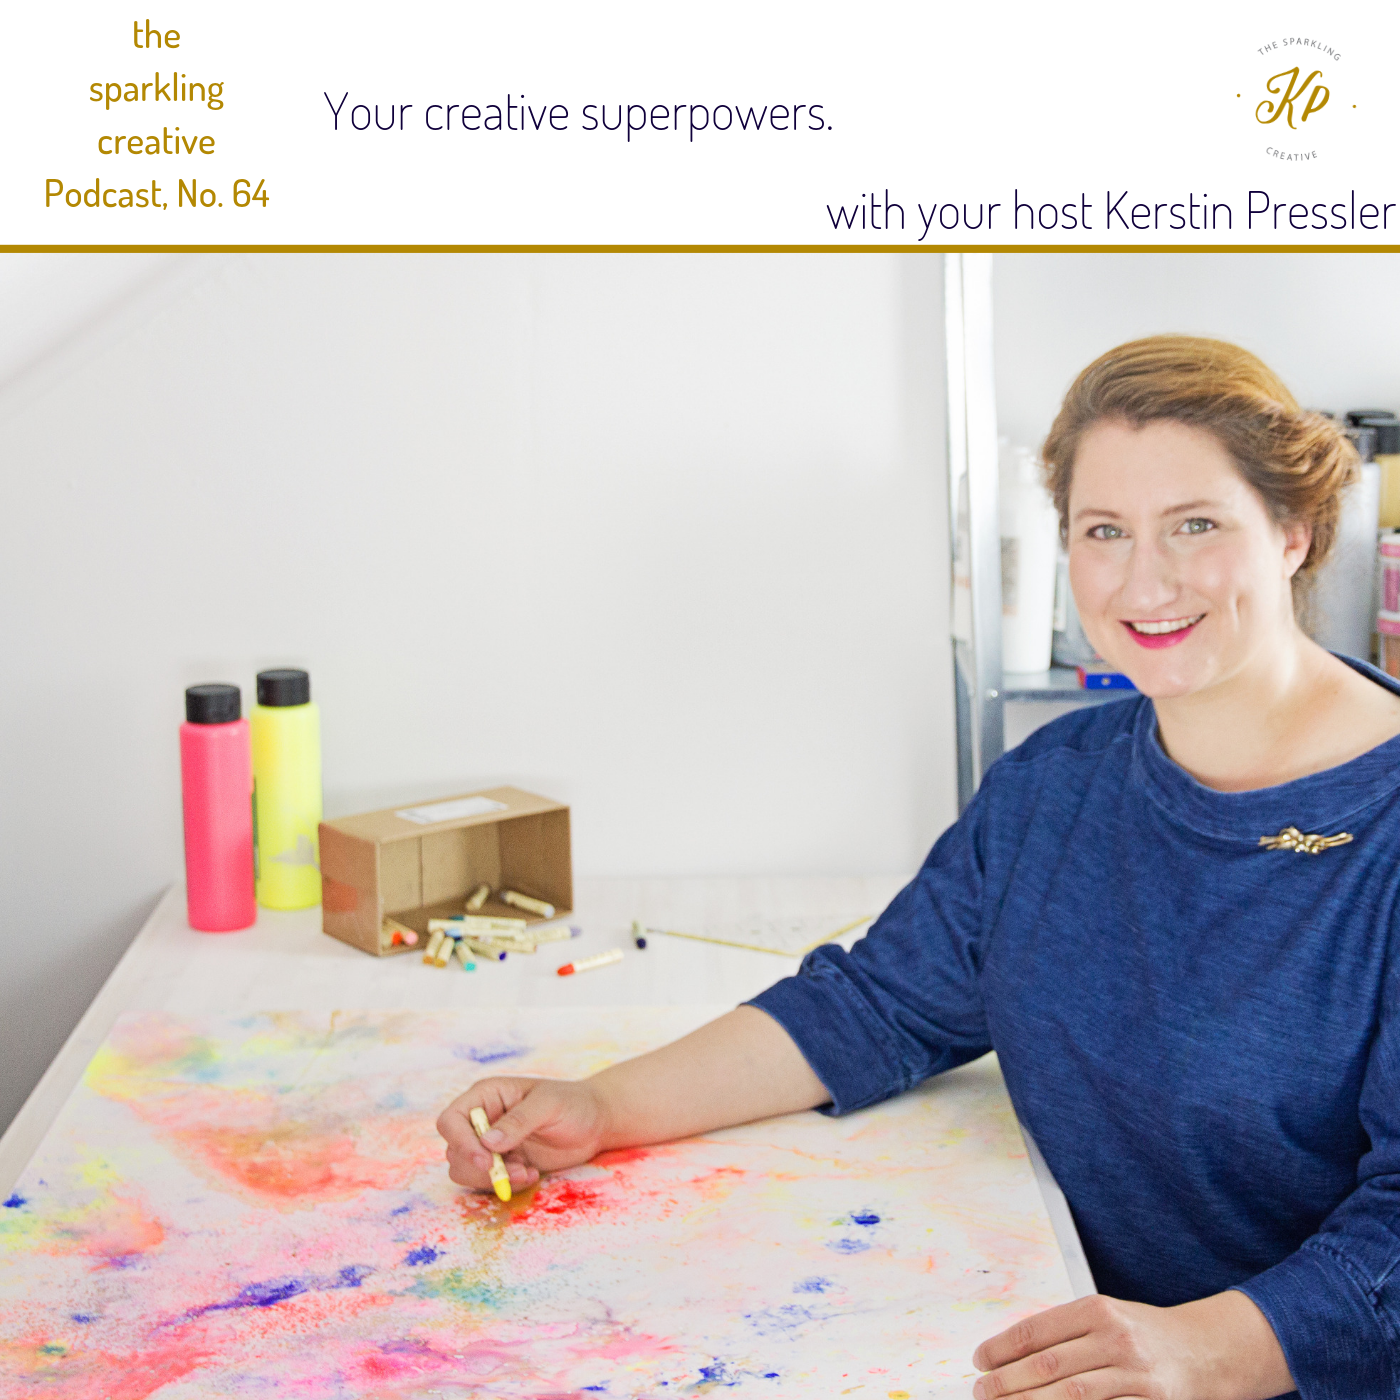 the sparkling creative Podcast,  Episode 64: Your creative superpowers, www.kerstinpressler.com/blog-2/episode64